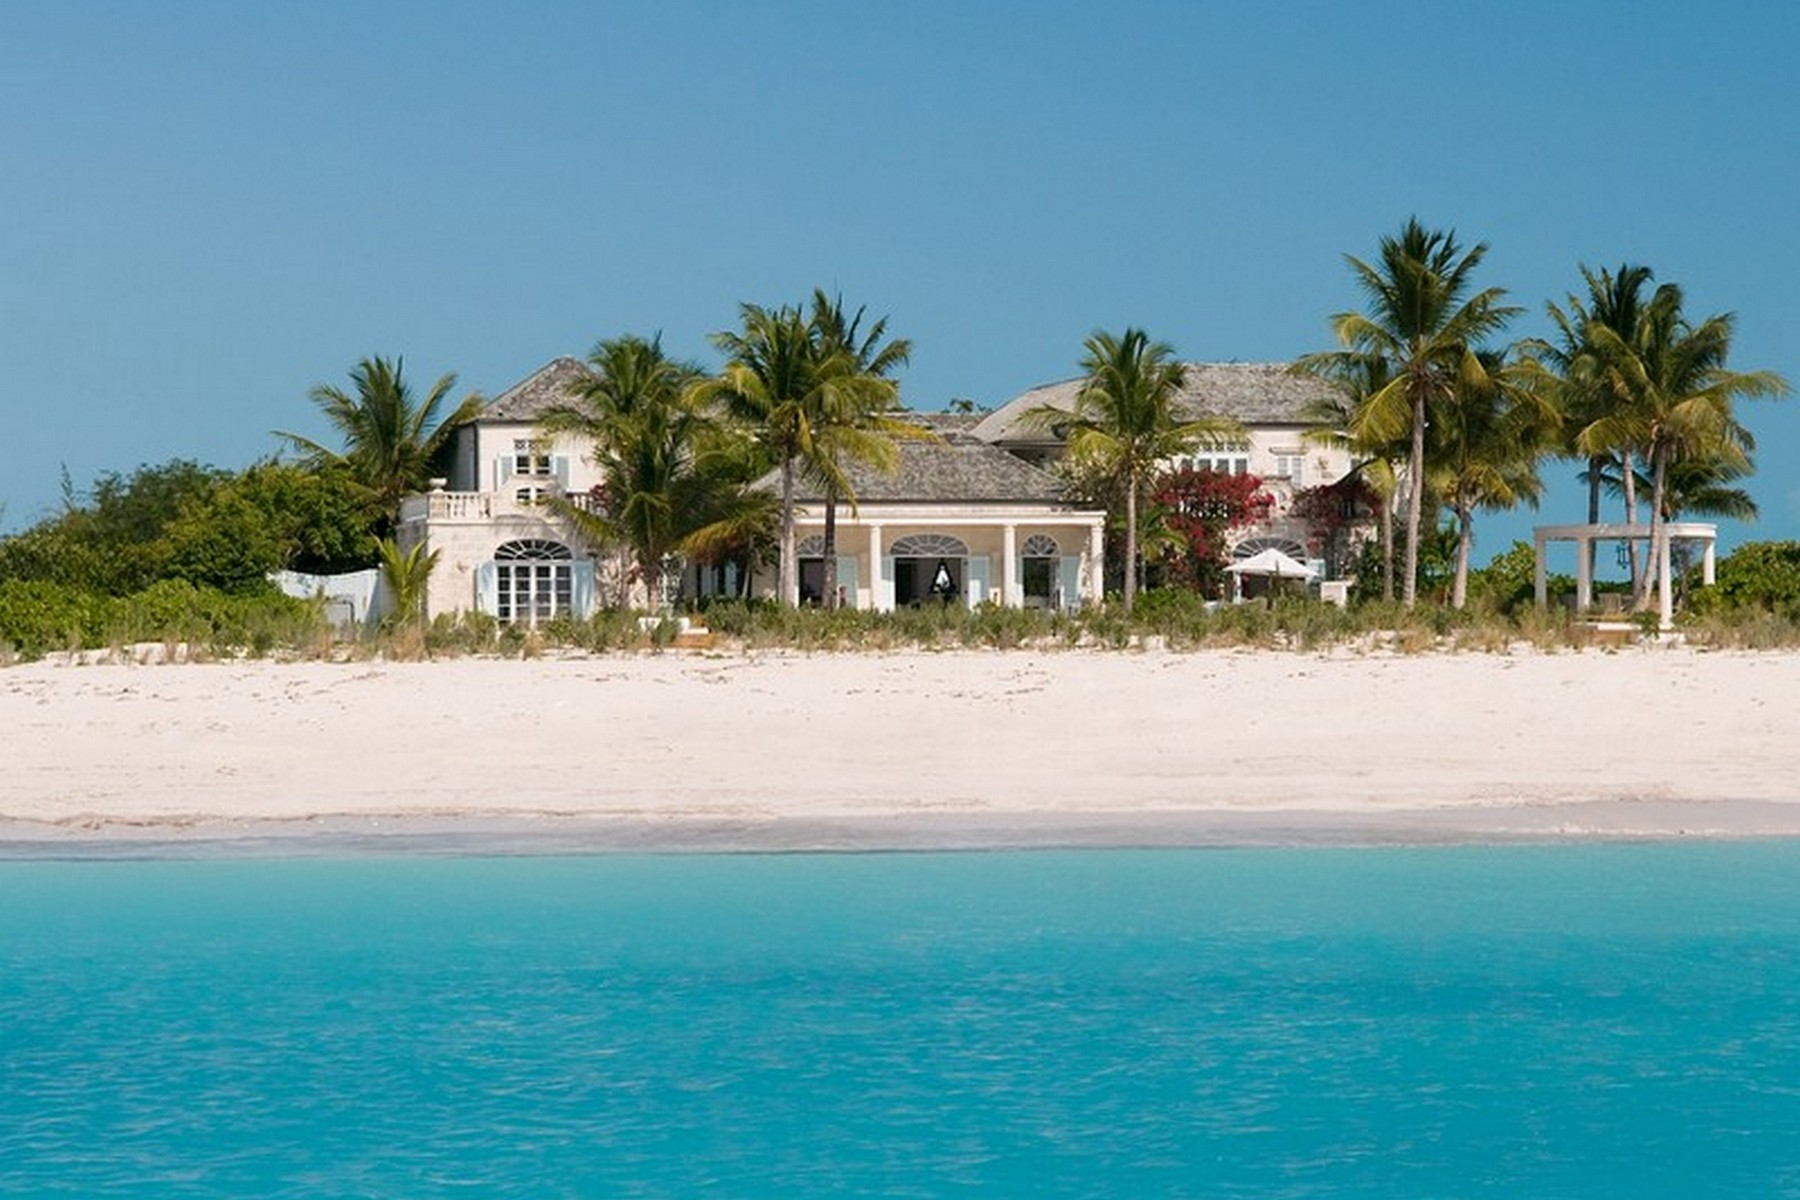 Single Family Home for Rent at Coral House Vacation Rental Coral House Drive Grace Bay, TCI BWI Turks And Caicos Islands